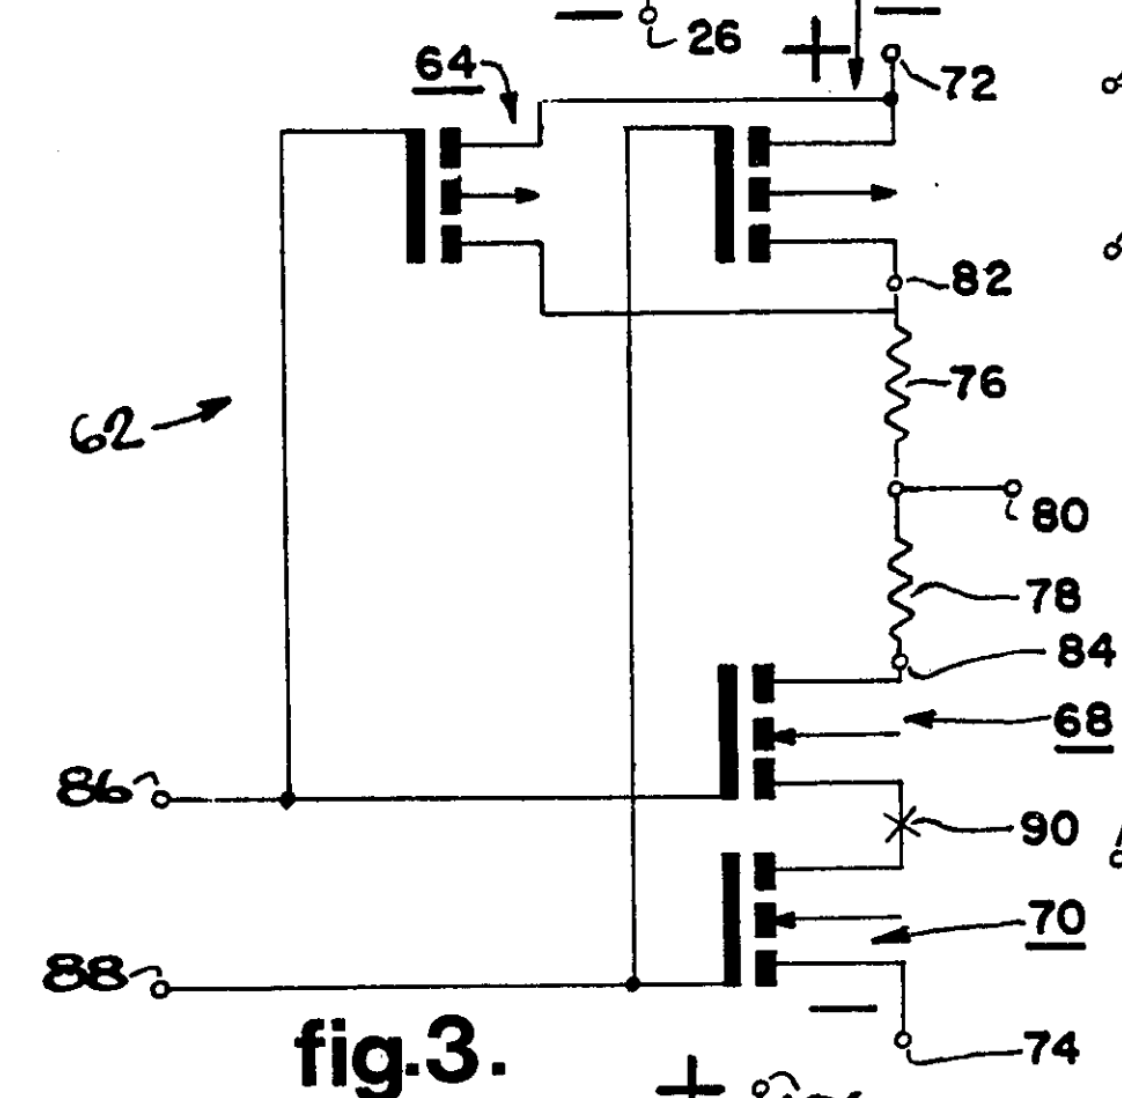 hight resolution of tnand gate wiring diagram